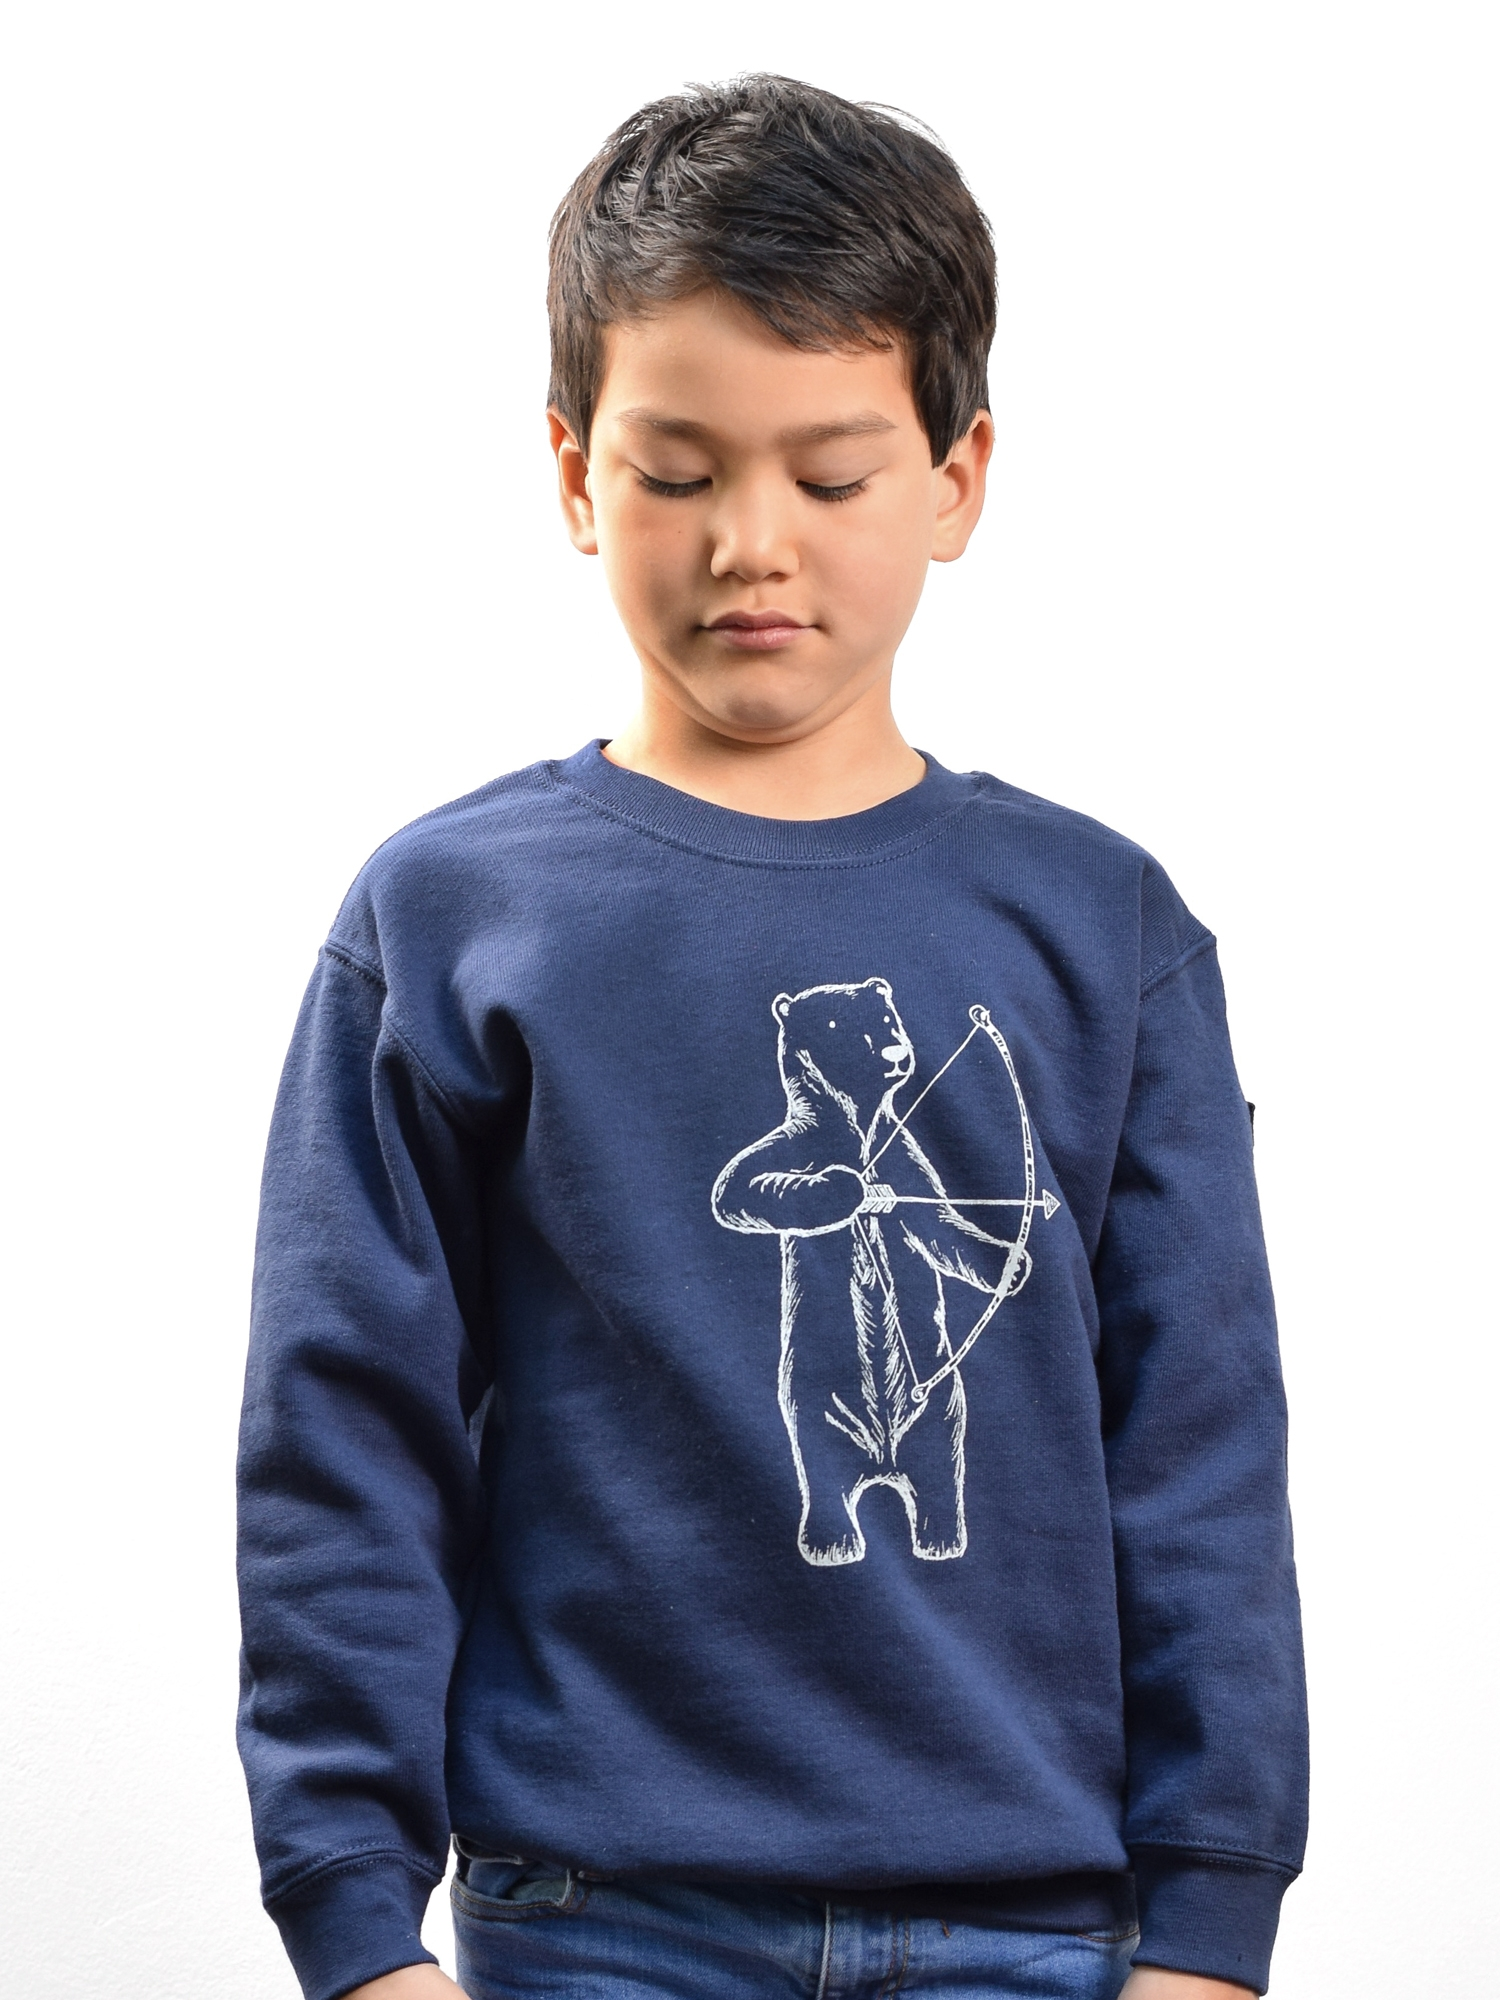 02a53043 MOST_HUNTED_BOW_SHOT_POLAR_BEAR_BOY_BODY_SHOP ·  most_hunted_icebear_sweater_kids_shop. €29.95. The polar bear is about to  ...